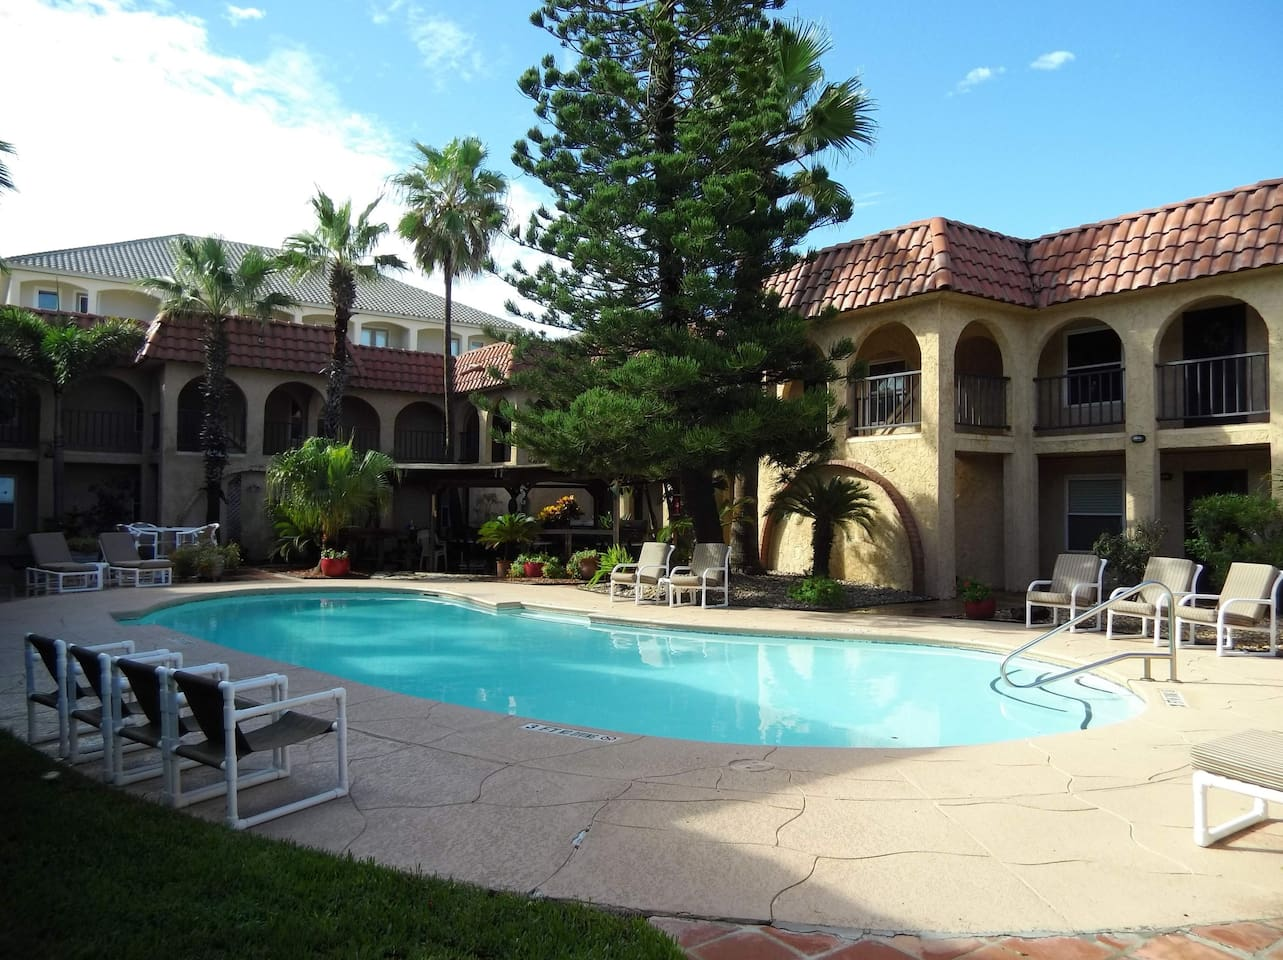 Private beautifully landscaped courtyard and pool